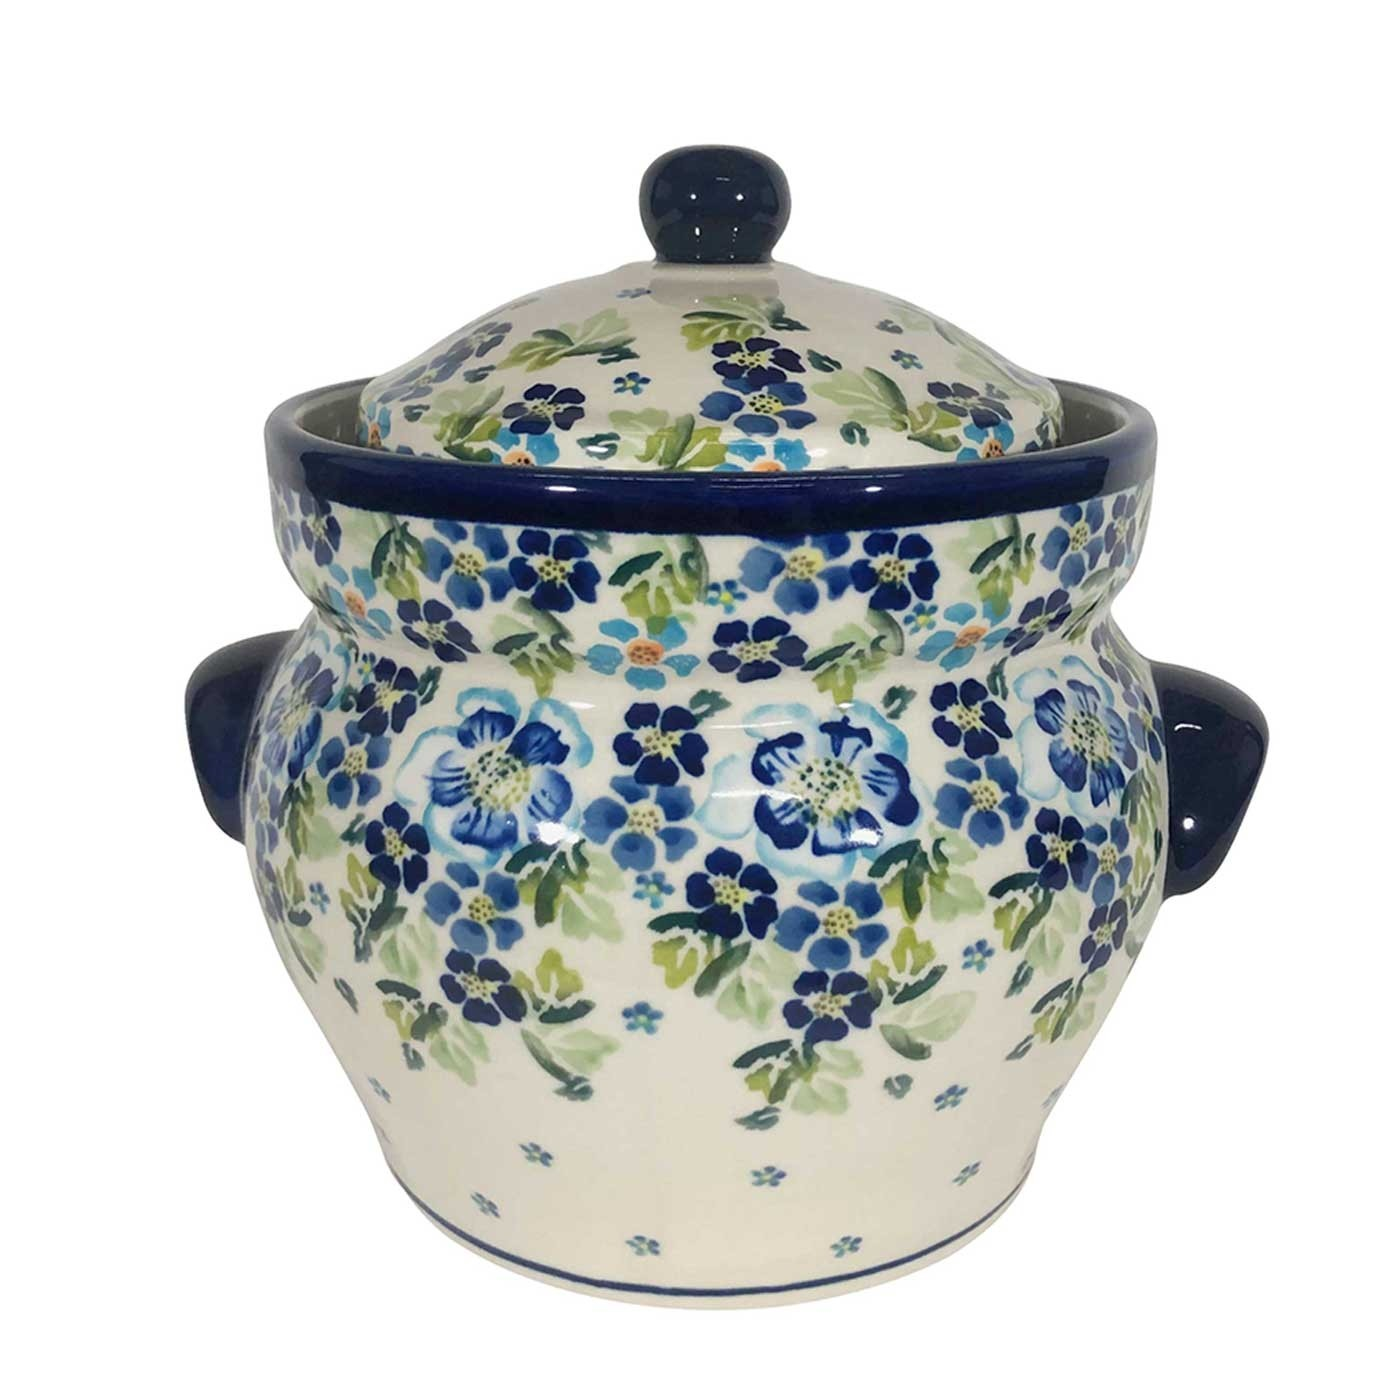 Pottery Avenue True Blues 12 cup Canister  - 1126-DU207